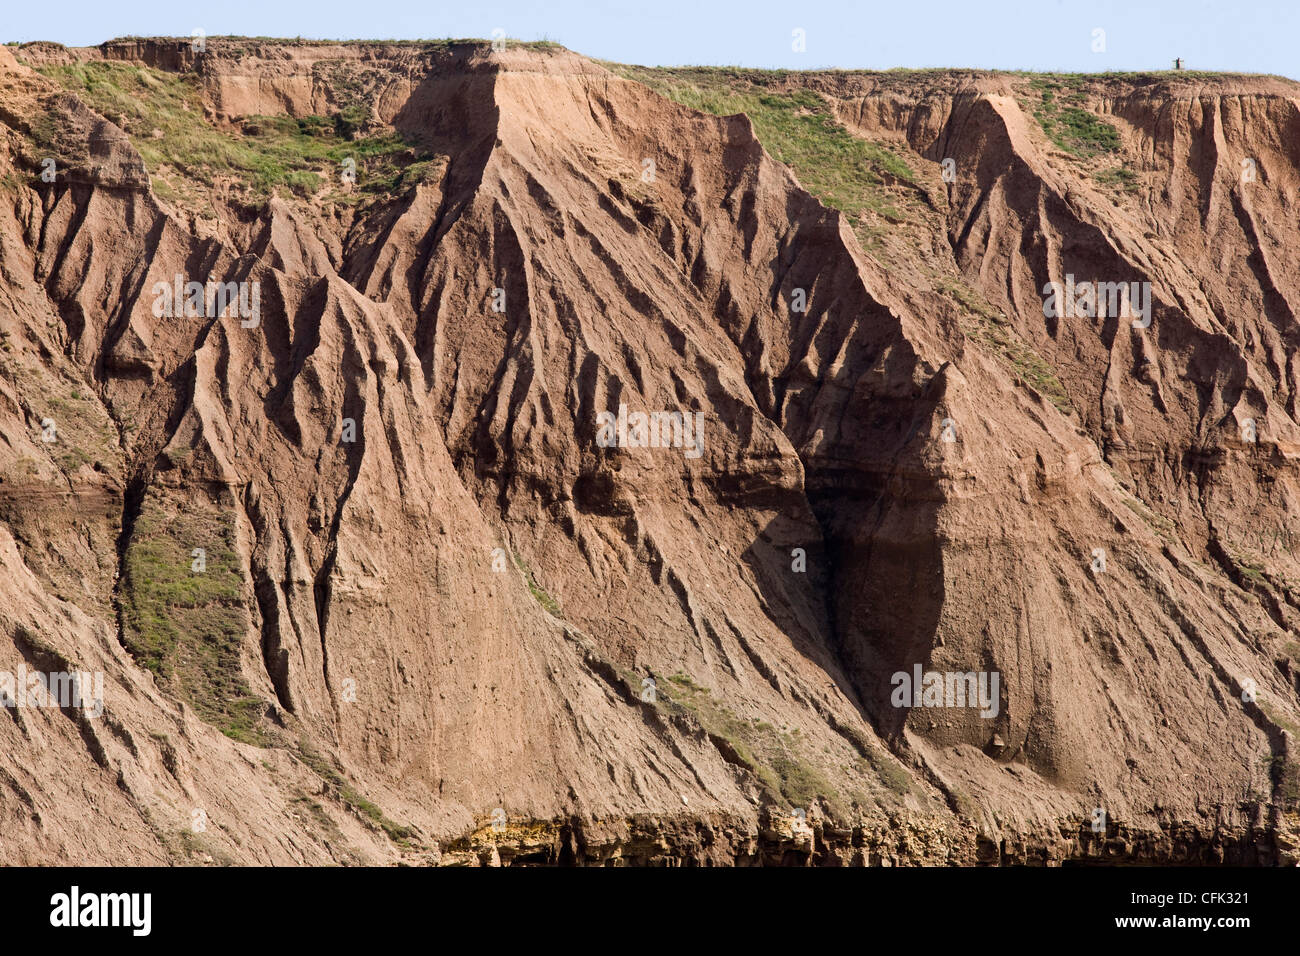 Filey Brigg, Carr Naze, crumbling clay cliffs showing landslides and landslips - Stock Image